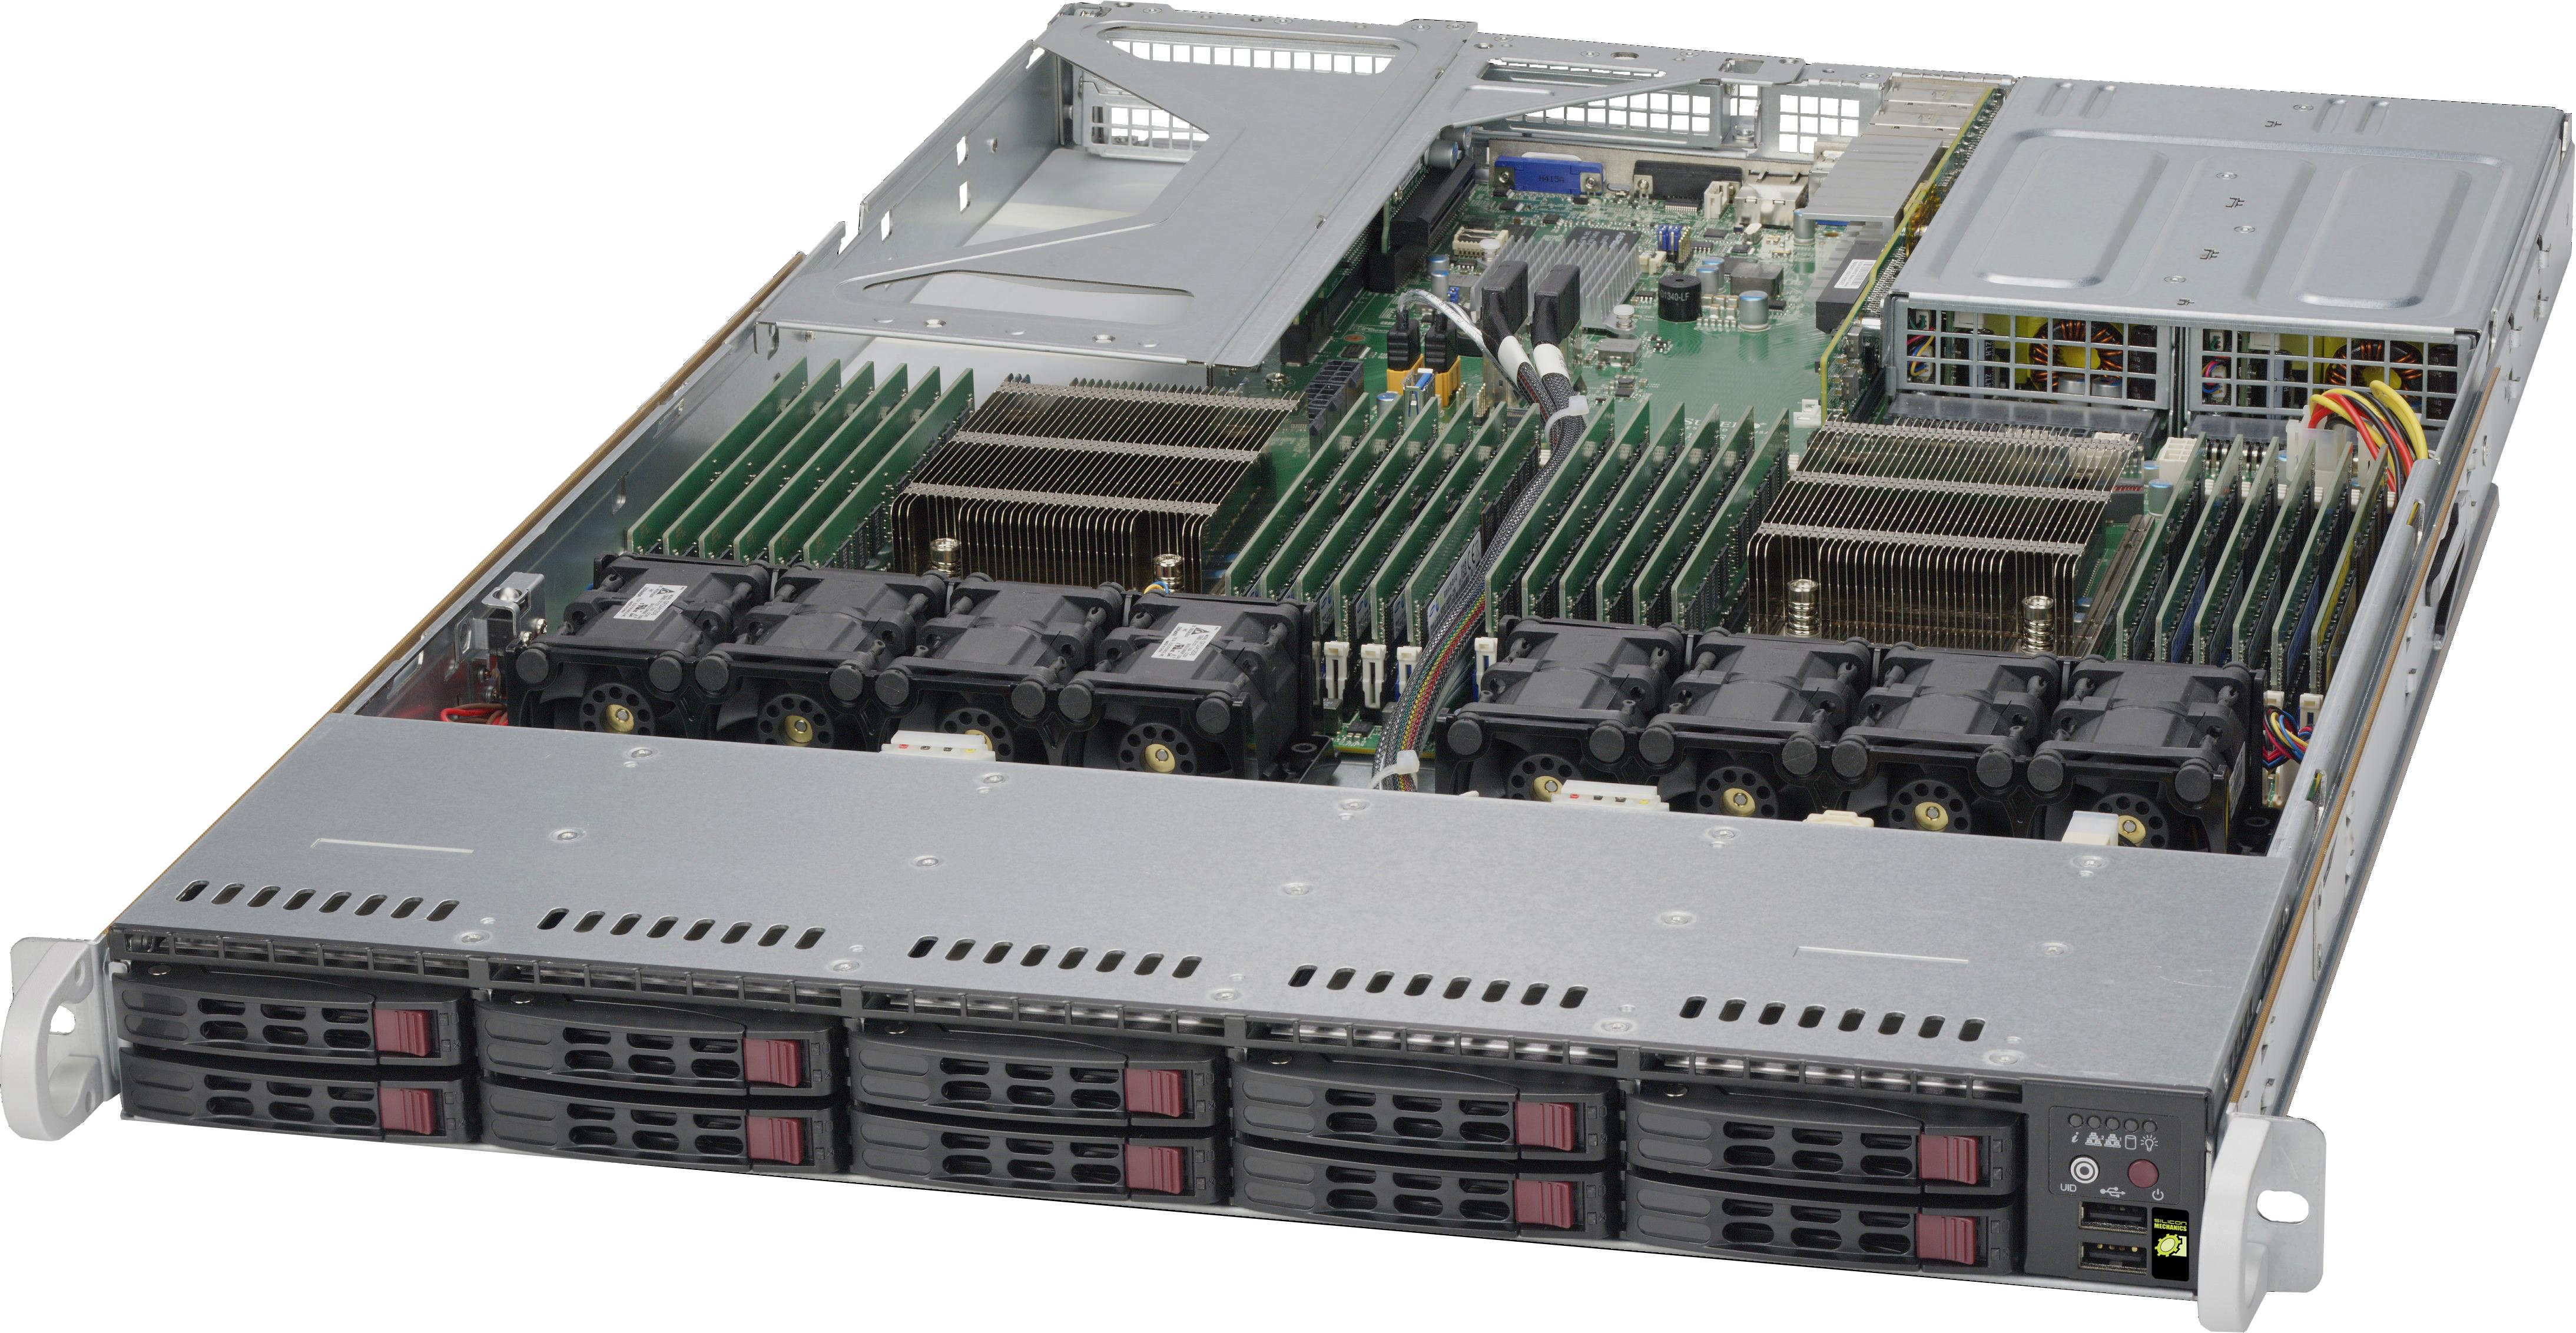 Tech Help - How much RAM do I need for a web server?